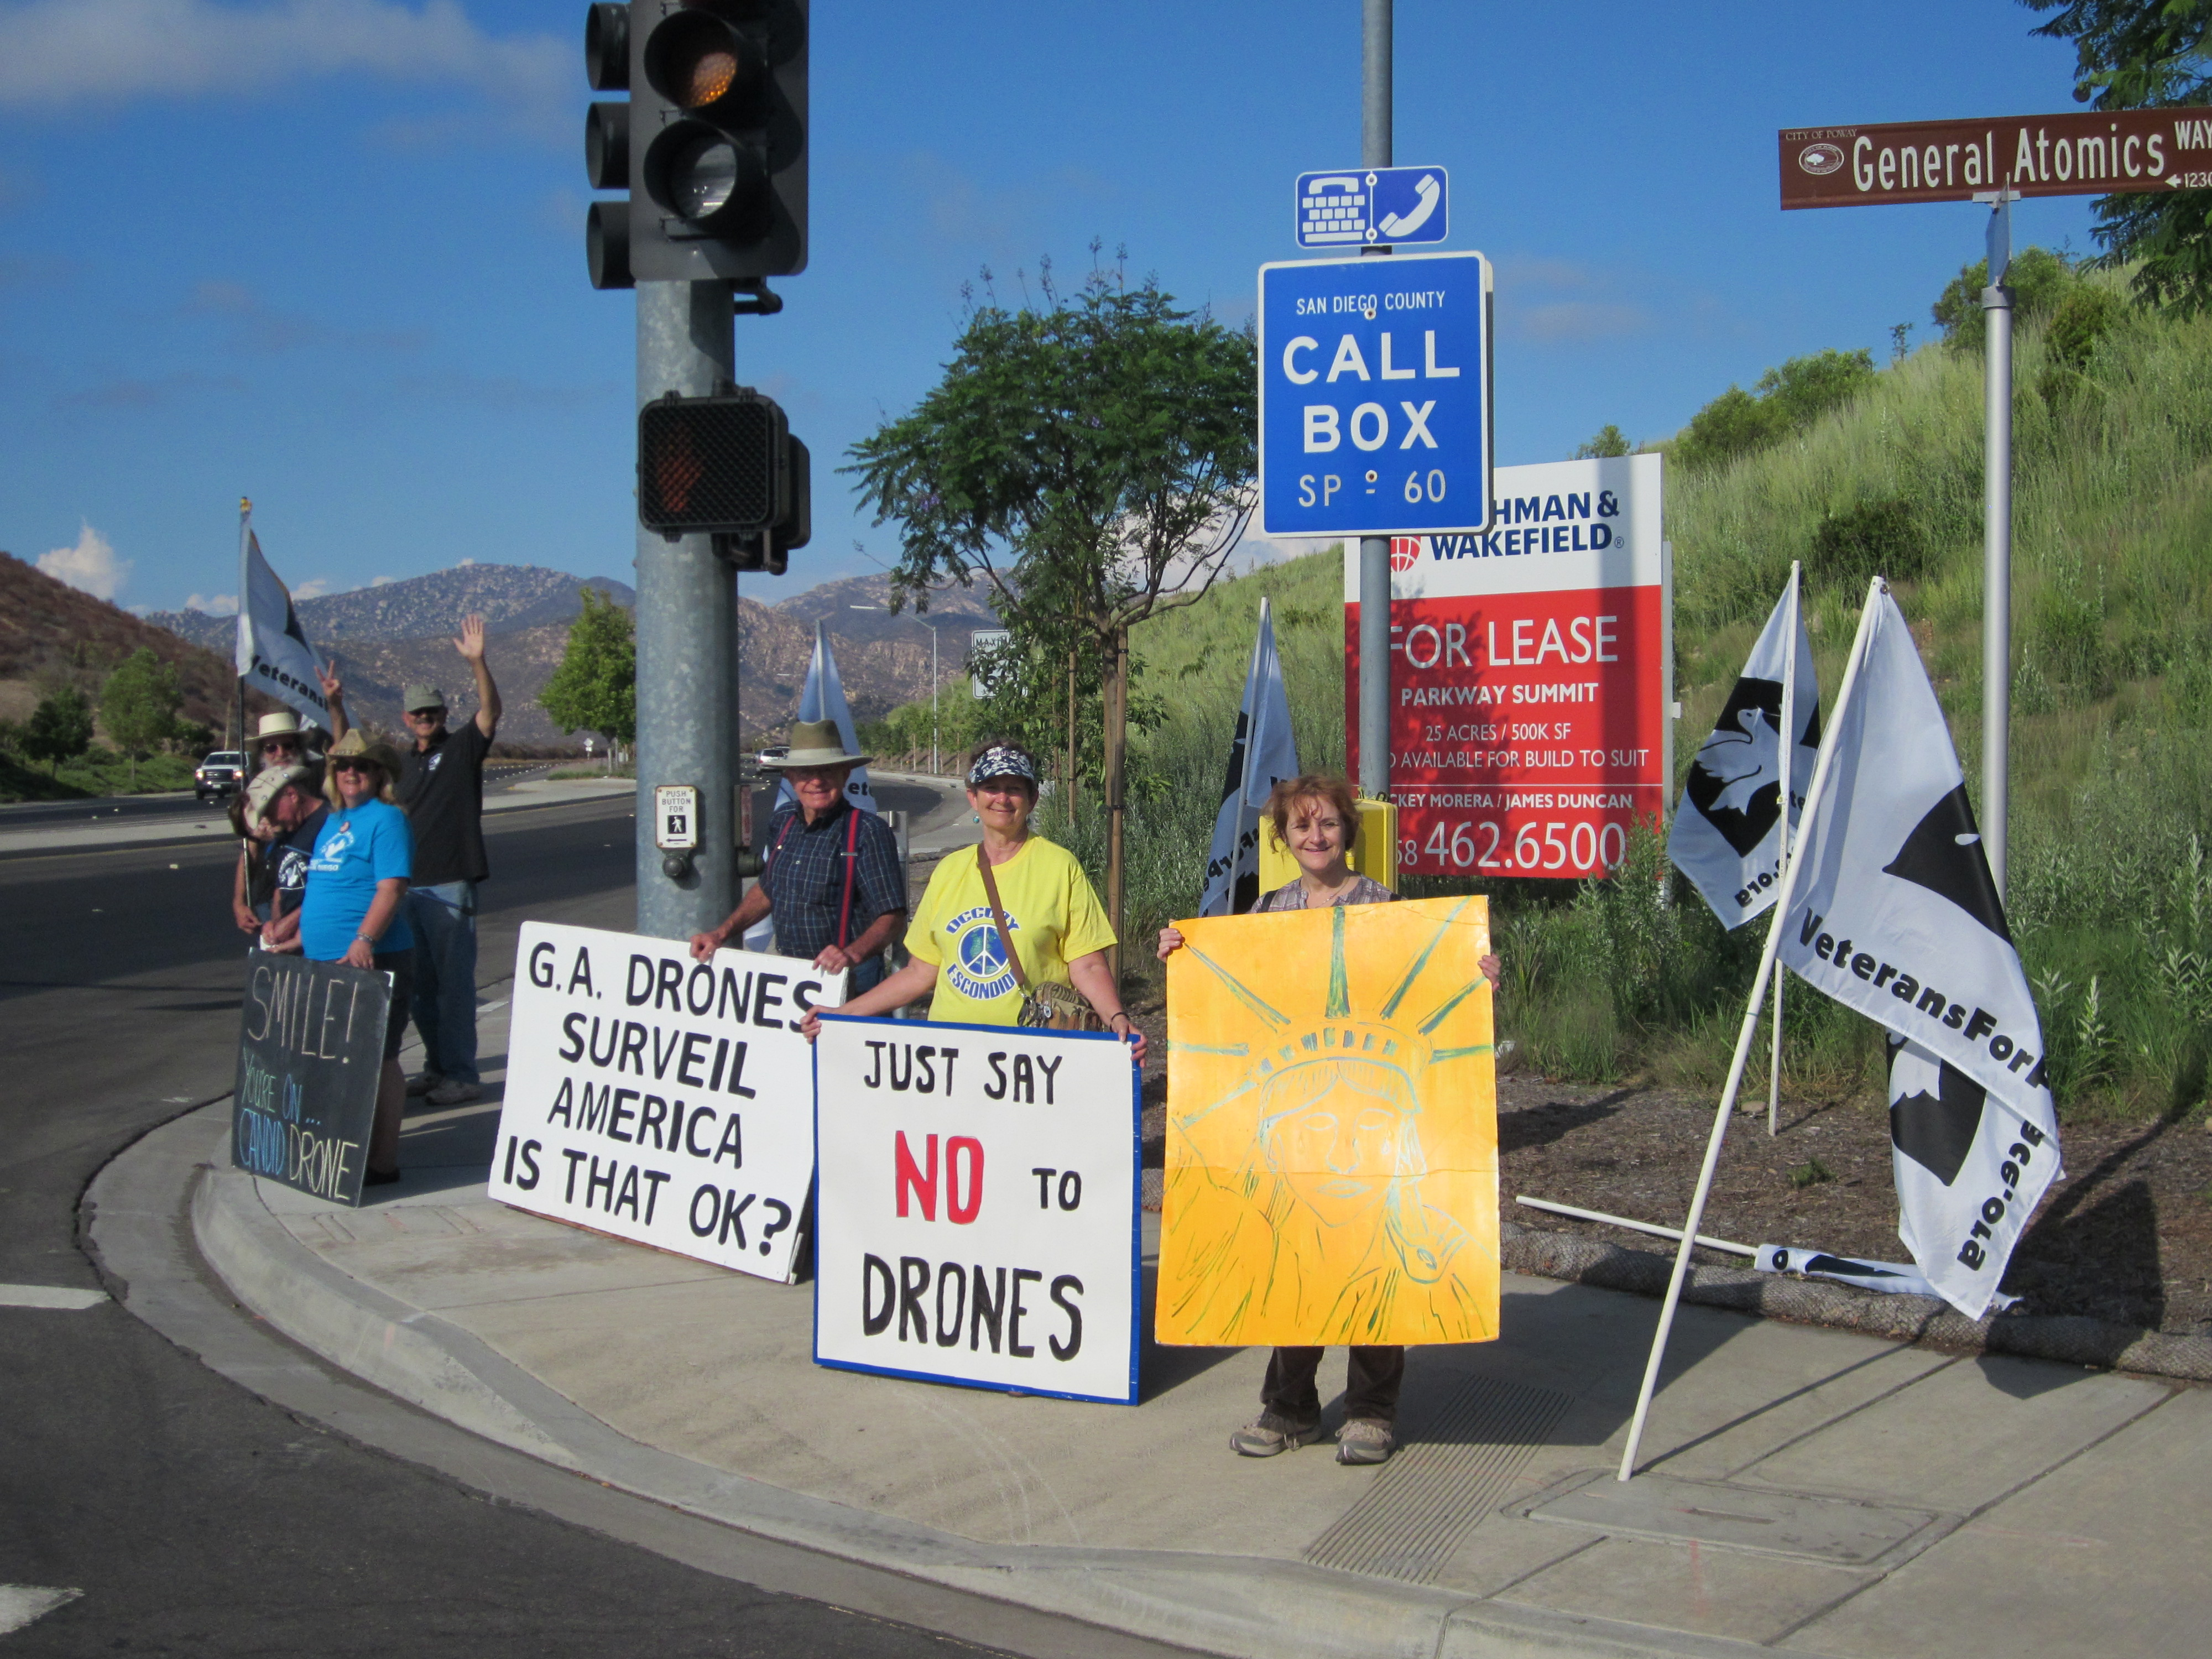 Drones Come Home, to U S  Privacy Activists' Dismay | Inter Press